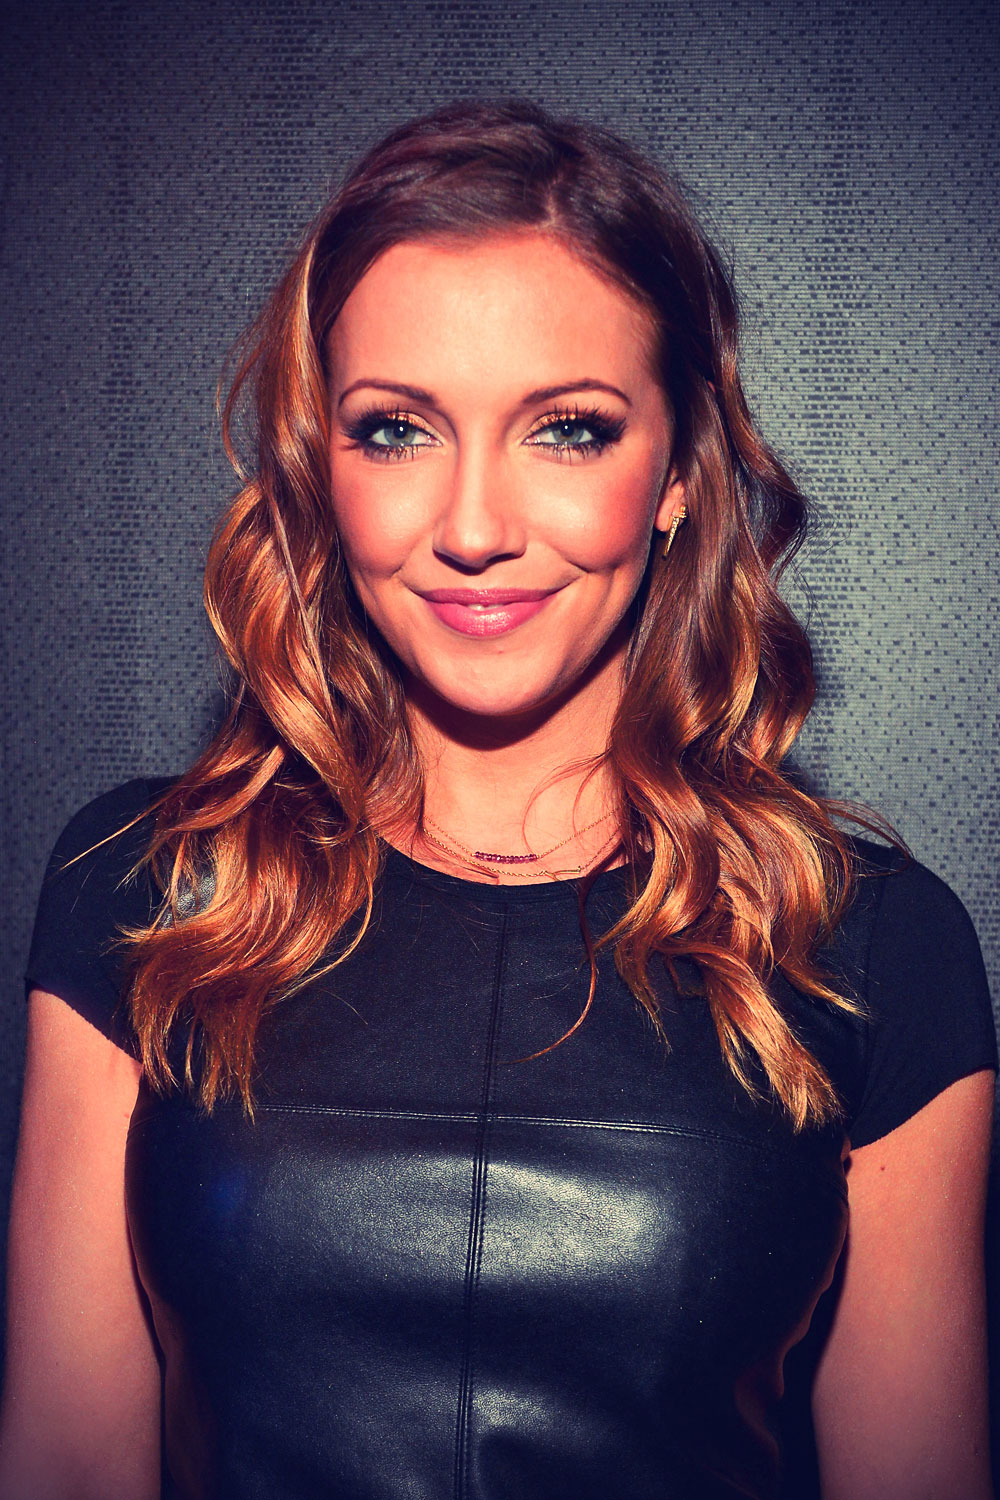 Katie Cassidy attends The CW Network's 2013 Upfront party